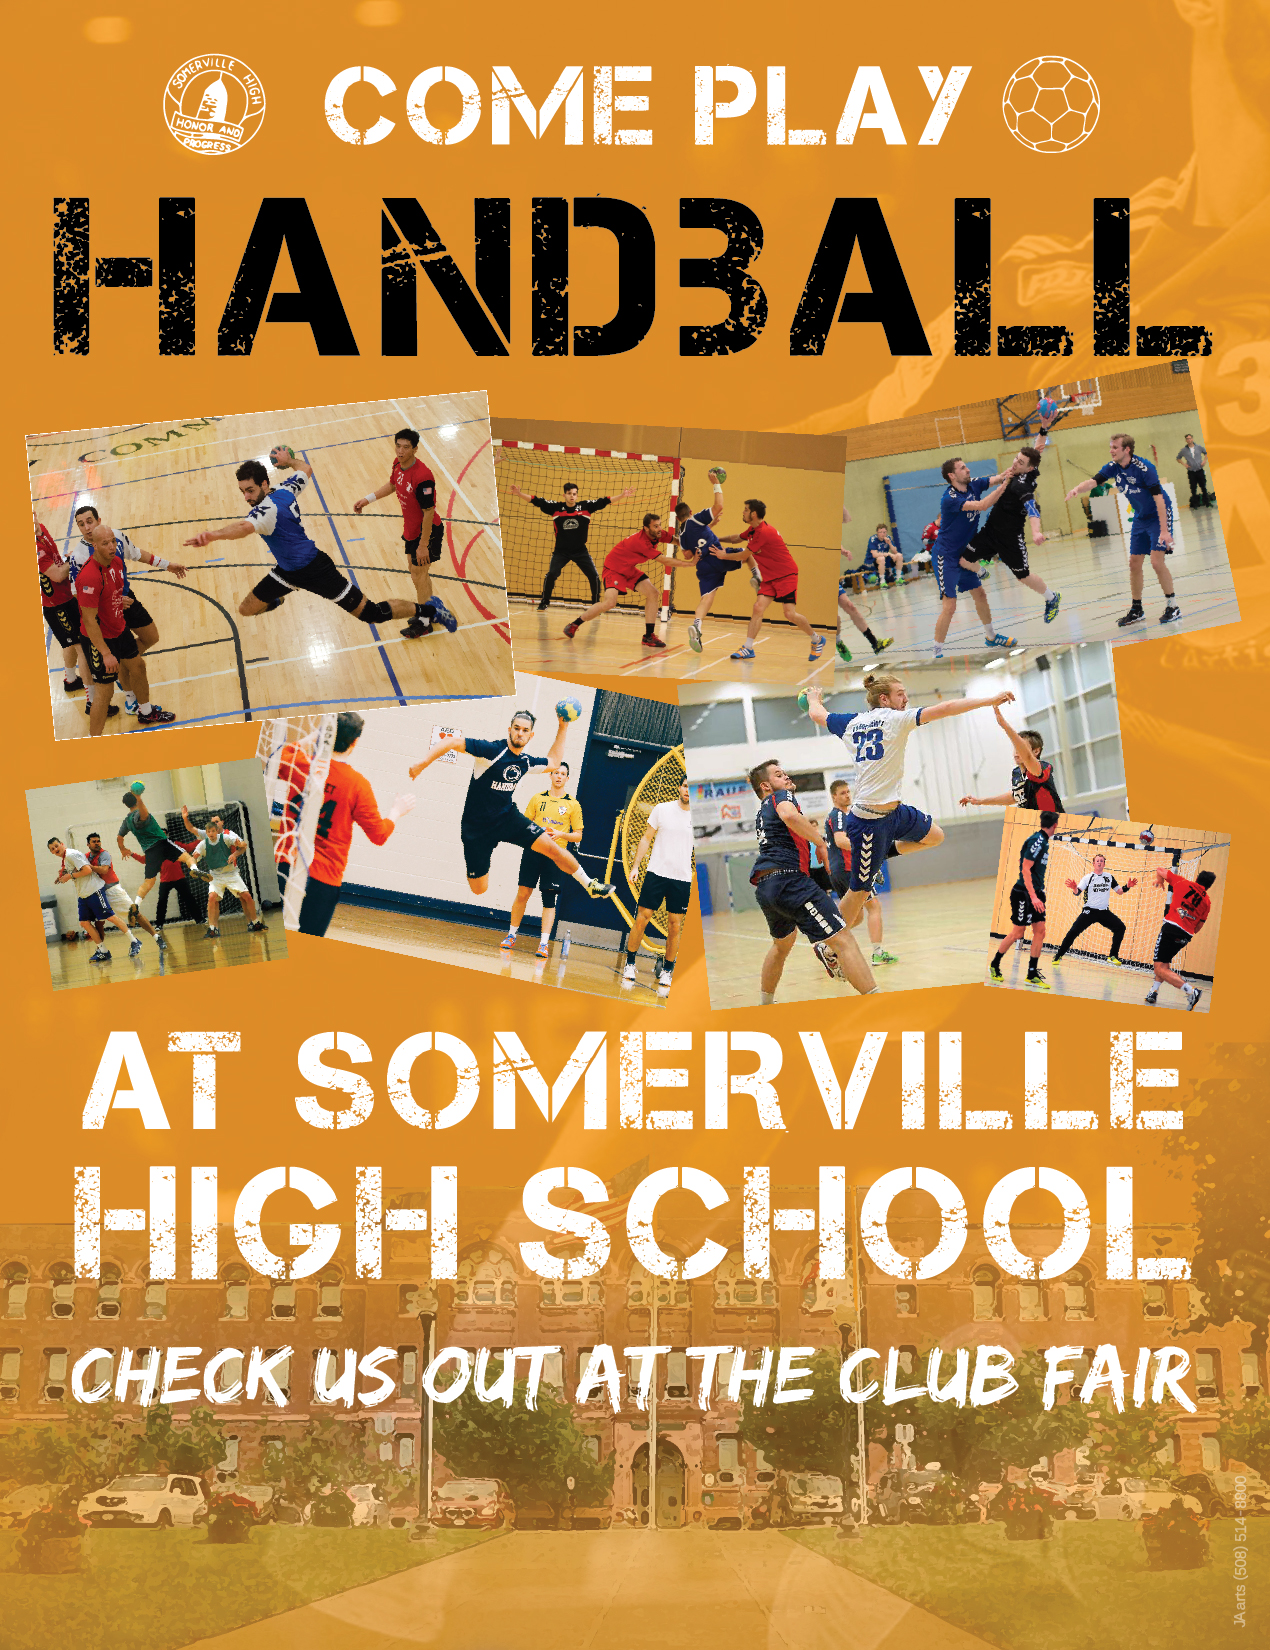 SomervilleHighSchool_Handball